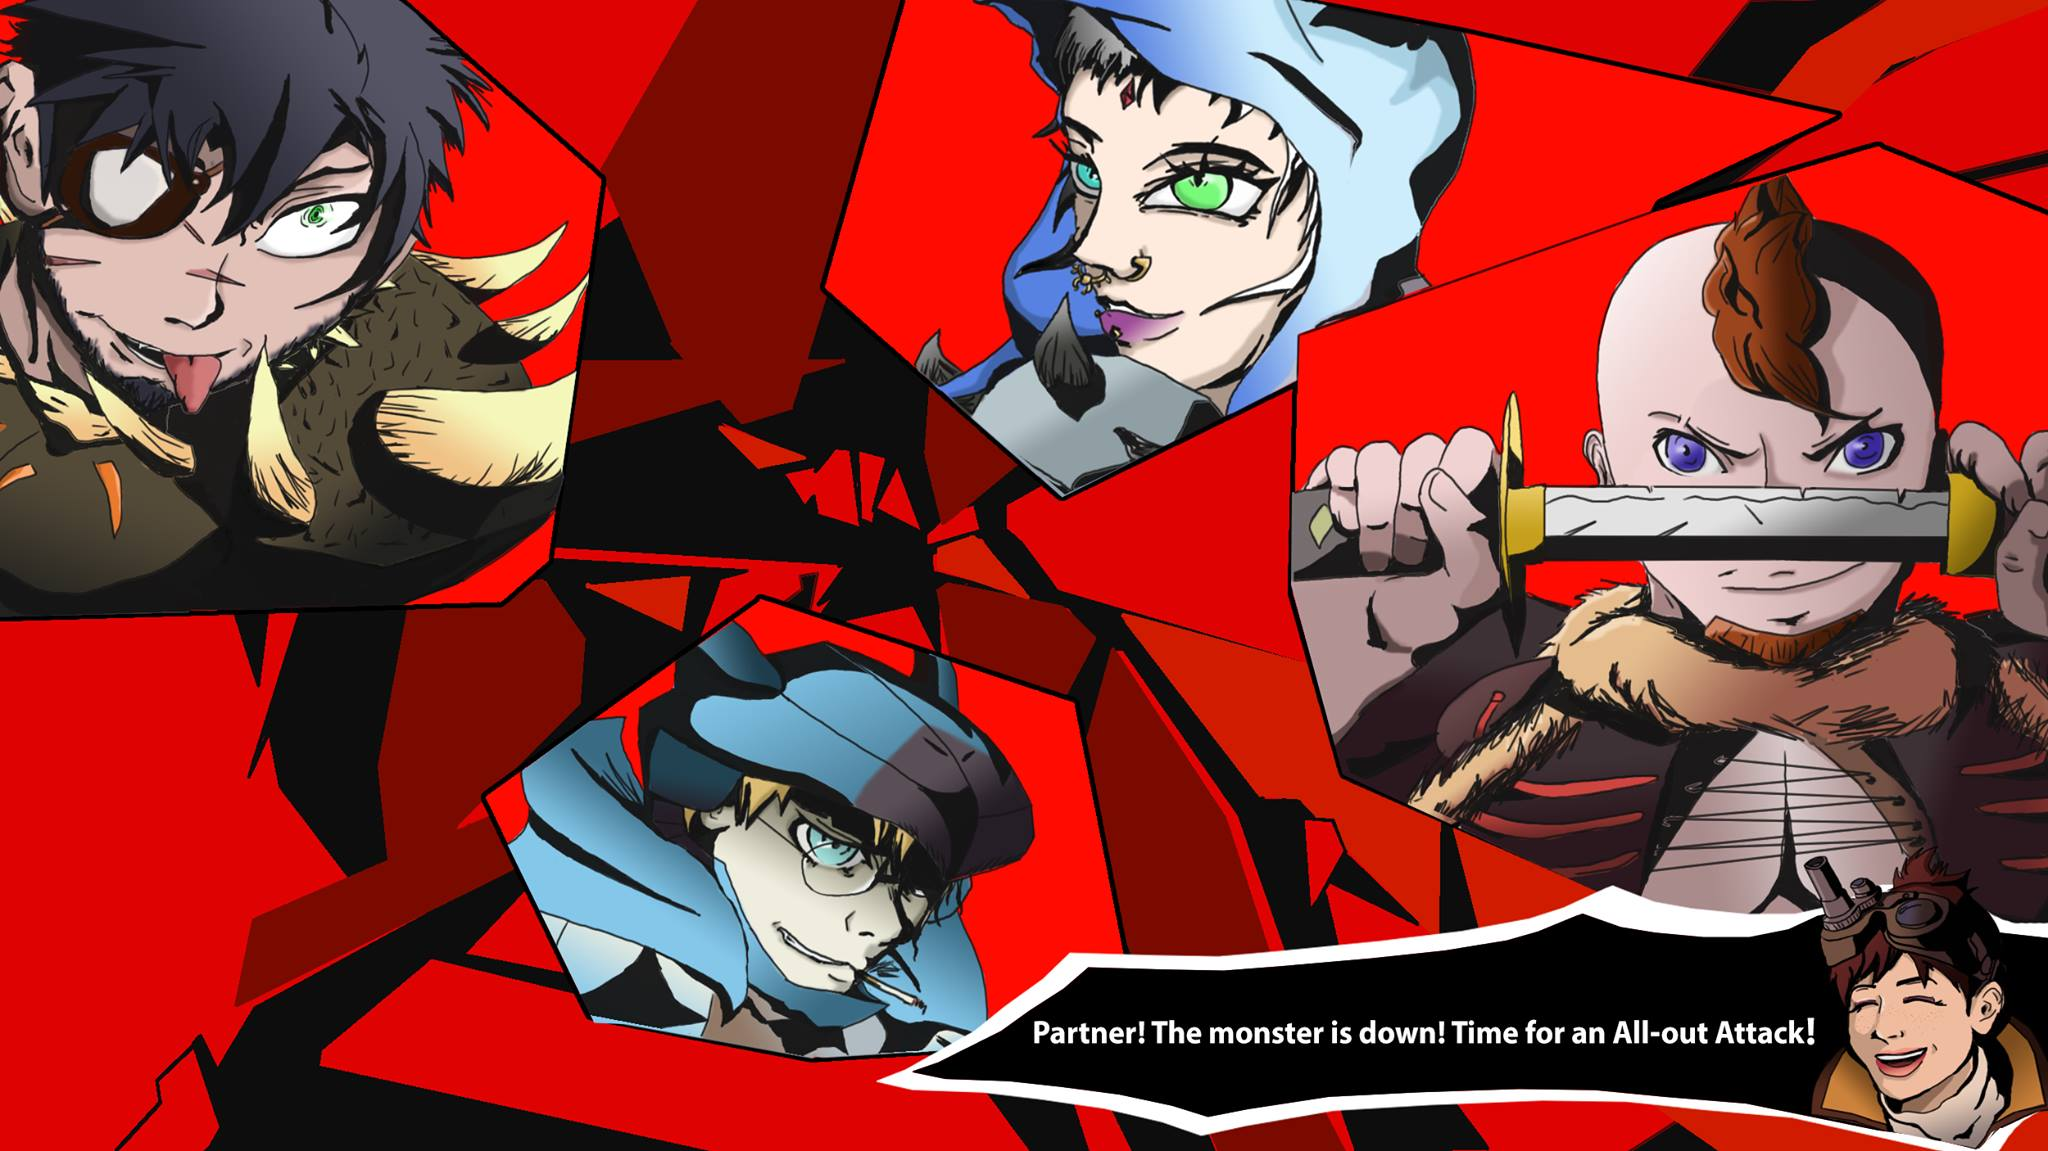 Monster Hunter group Persona 5 style Background